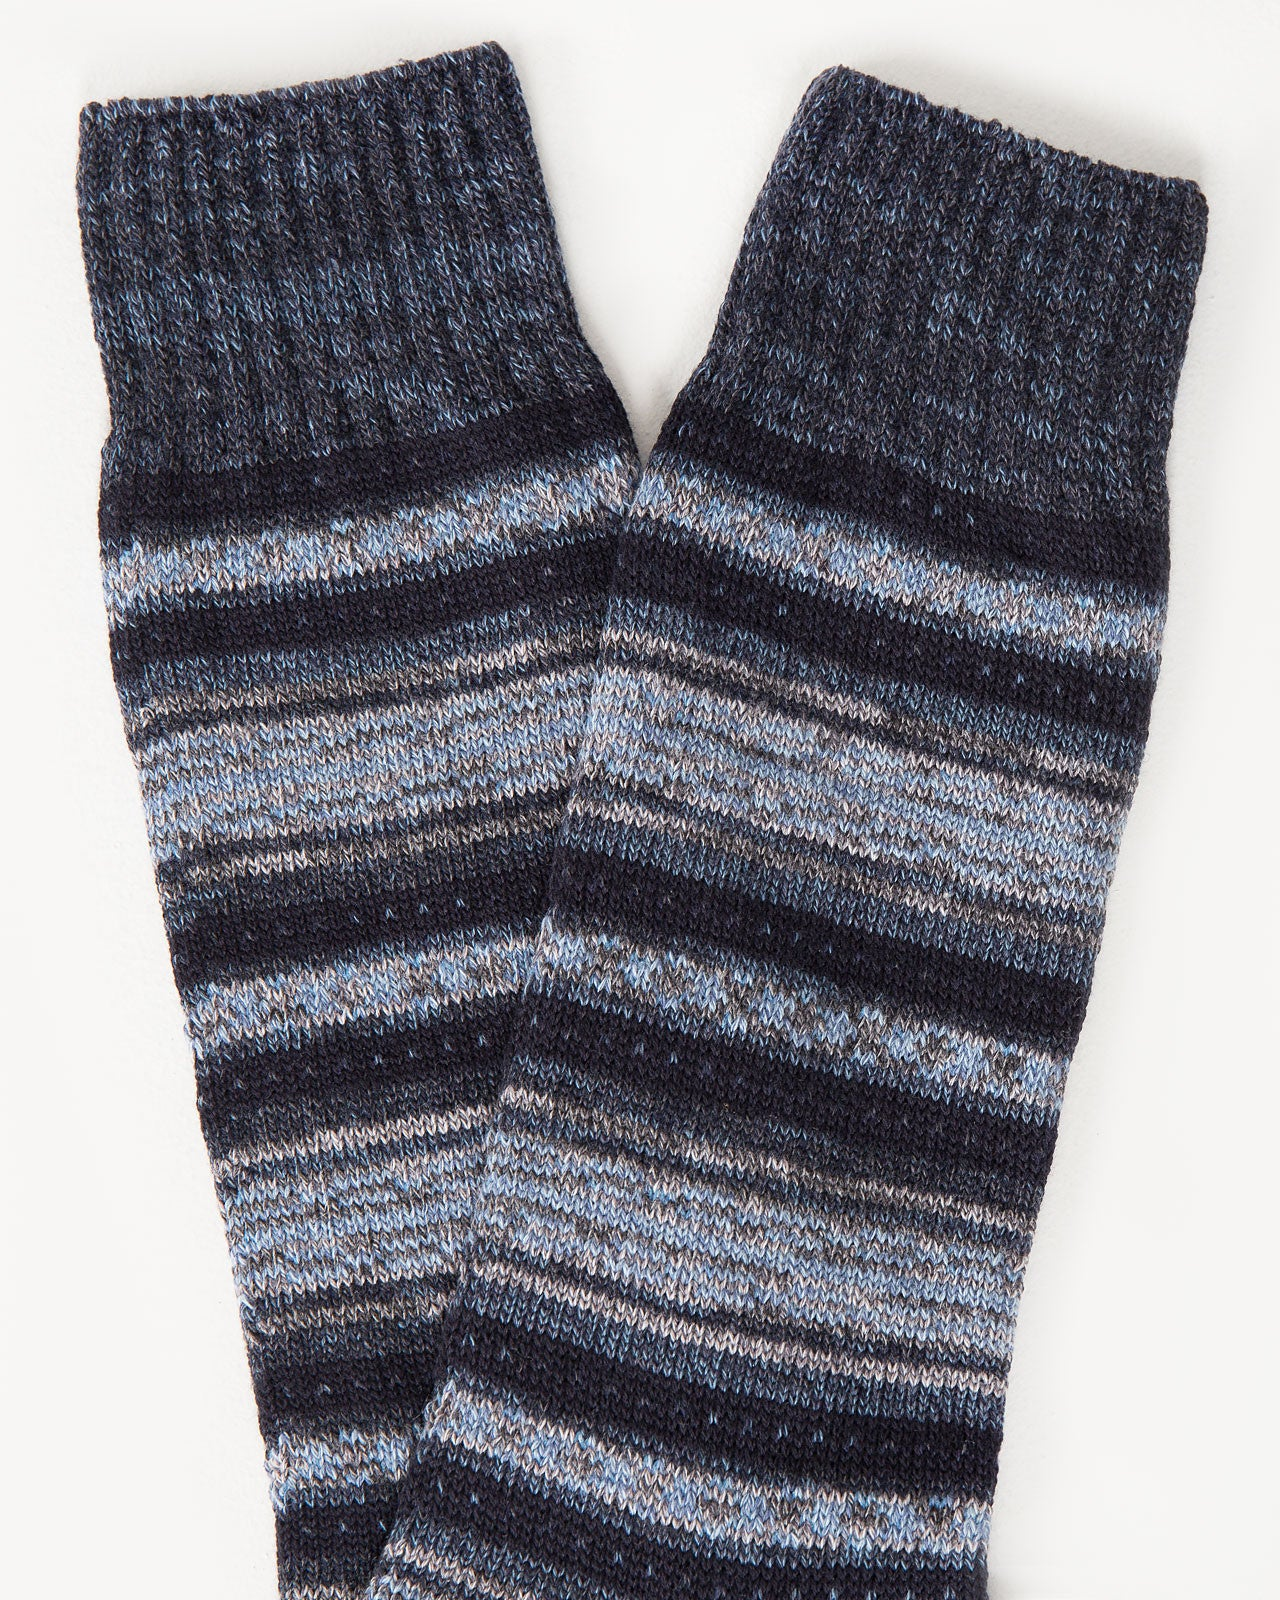 Blanket Border Sock in Black Navy | Mr. Gray